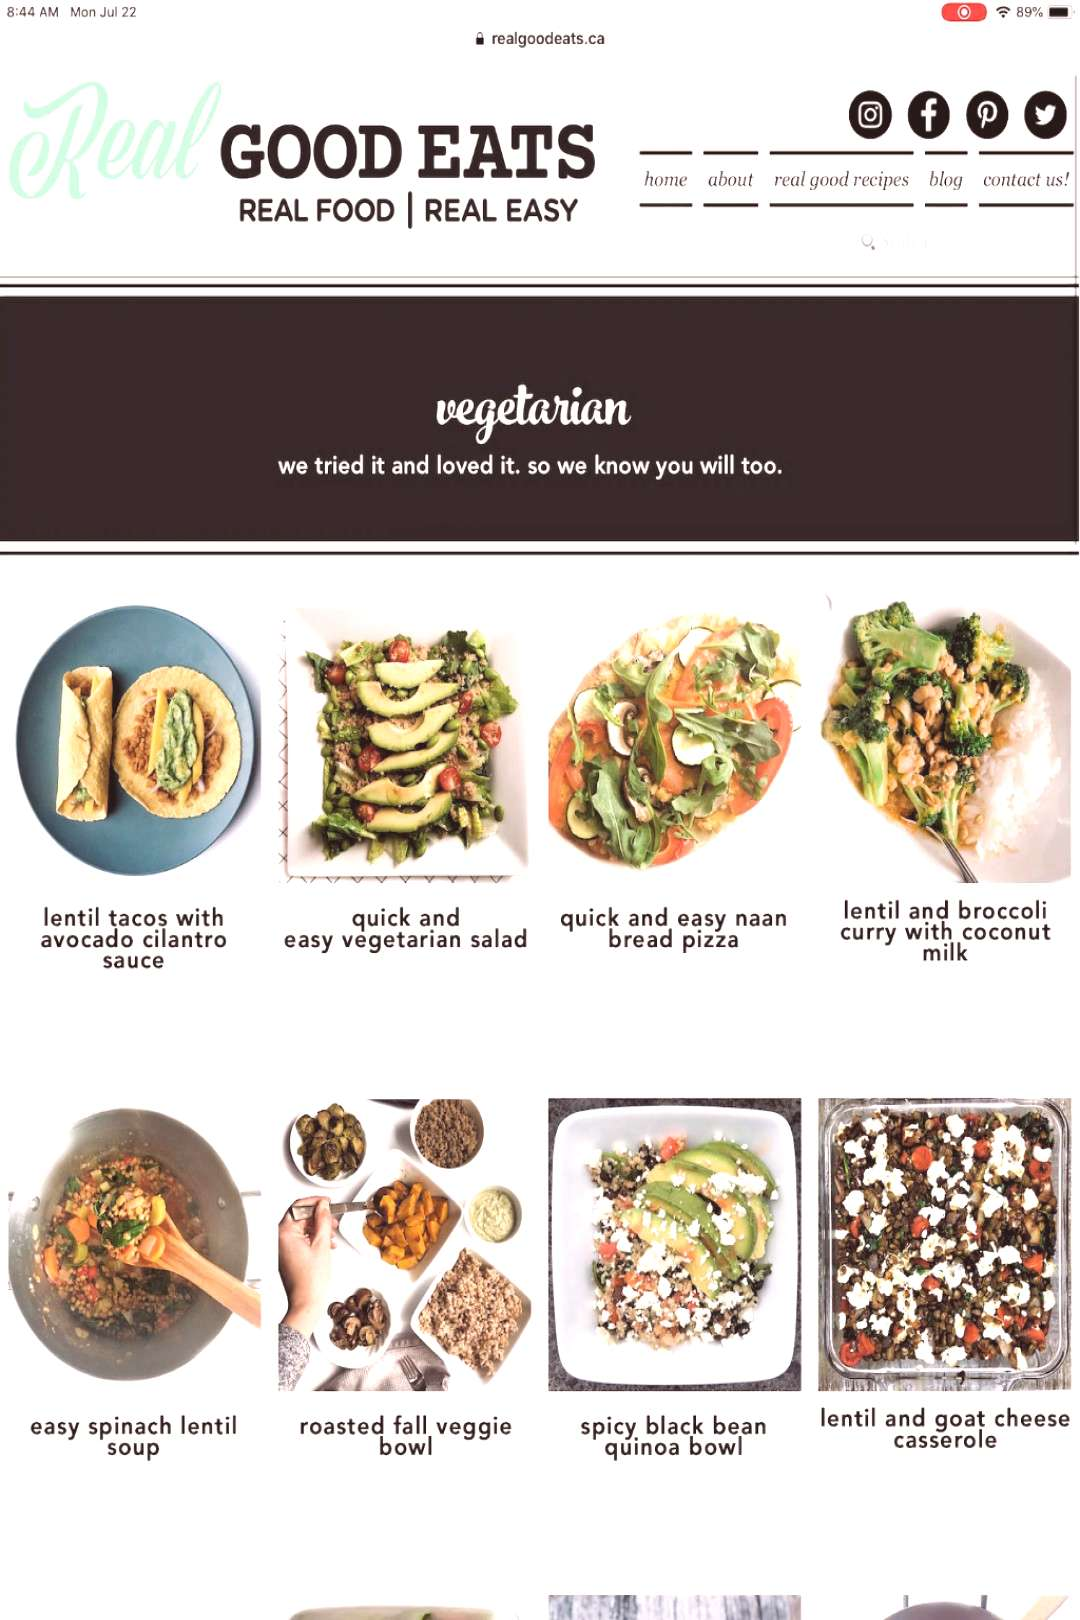 If you're looking for some quick and easy plant-based dinner recipes, be sure to check out our Ve